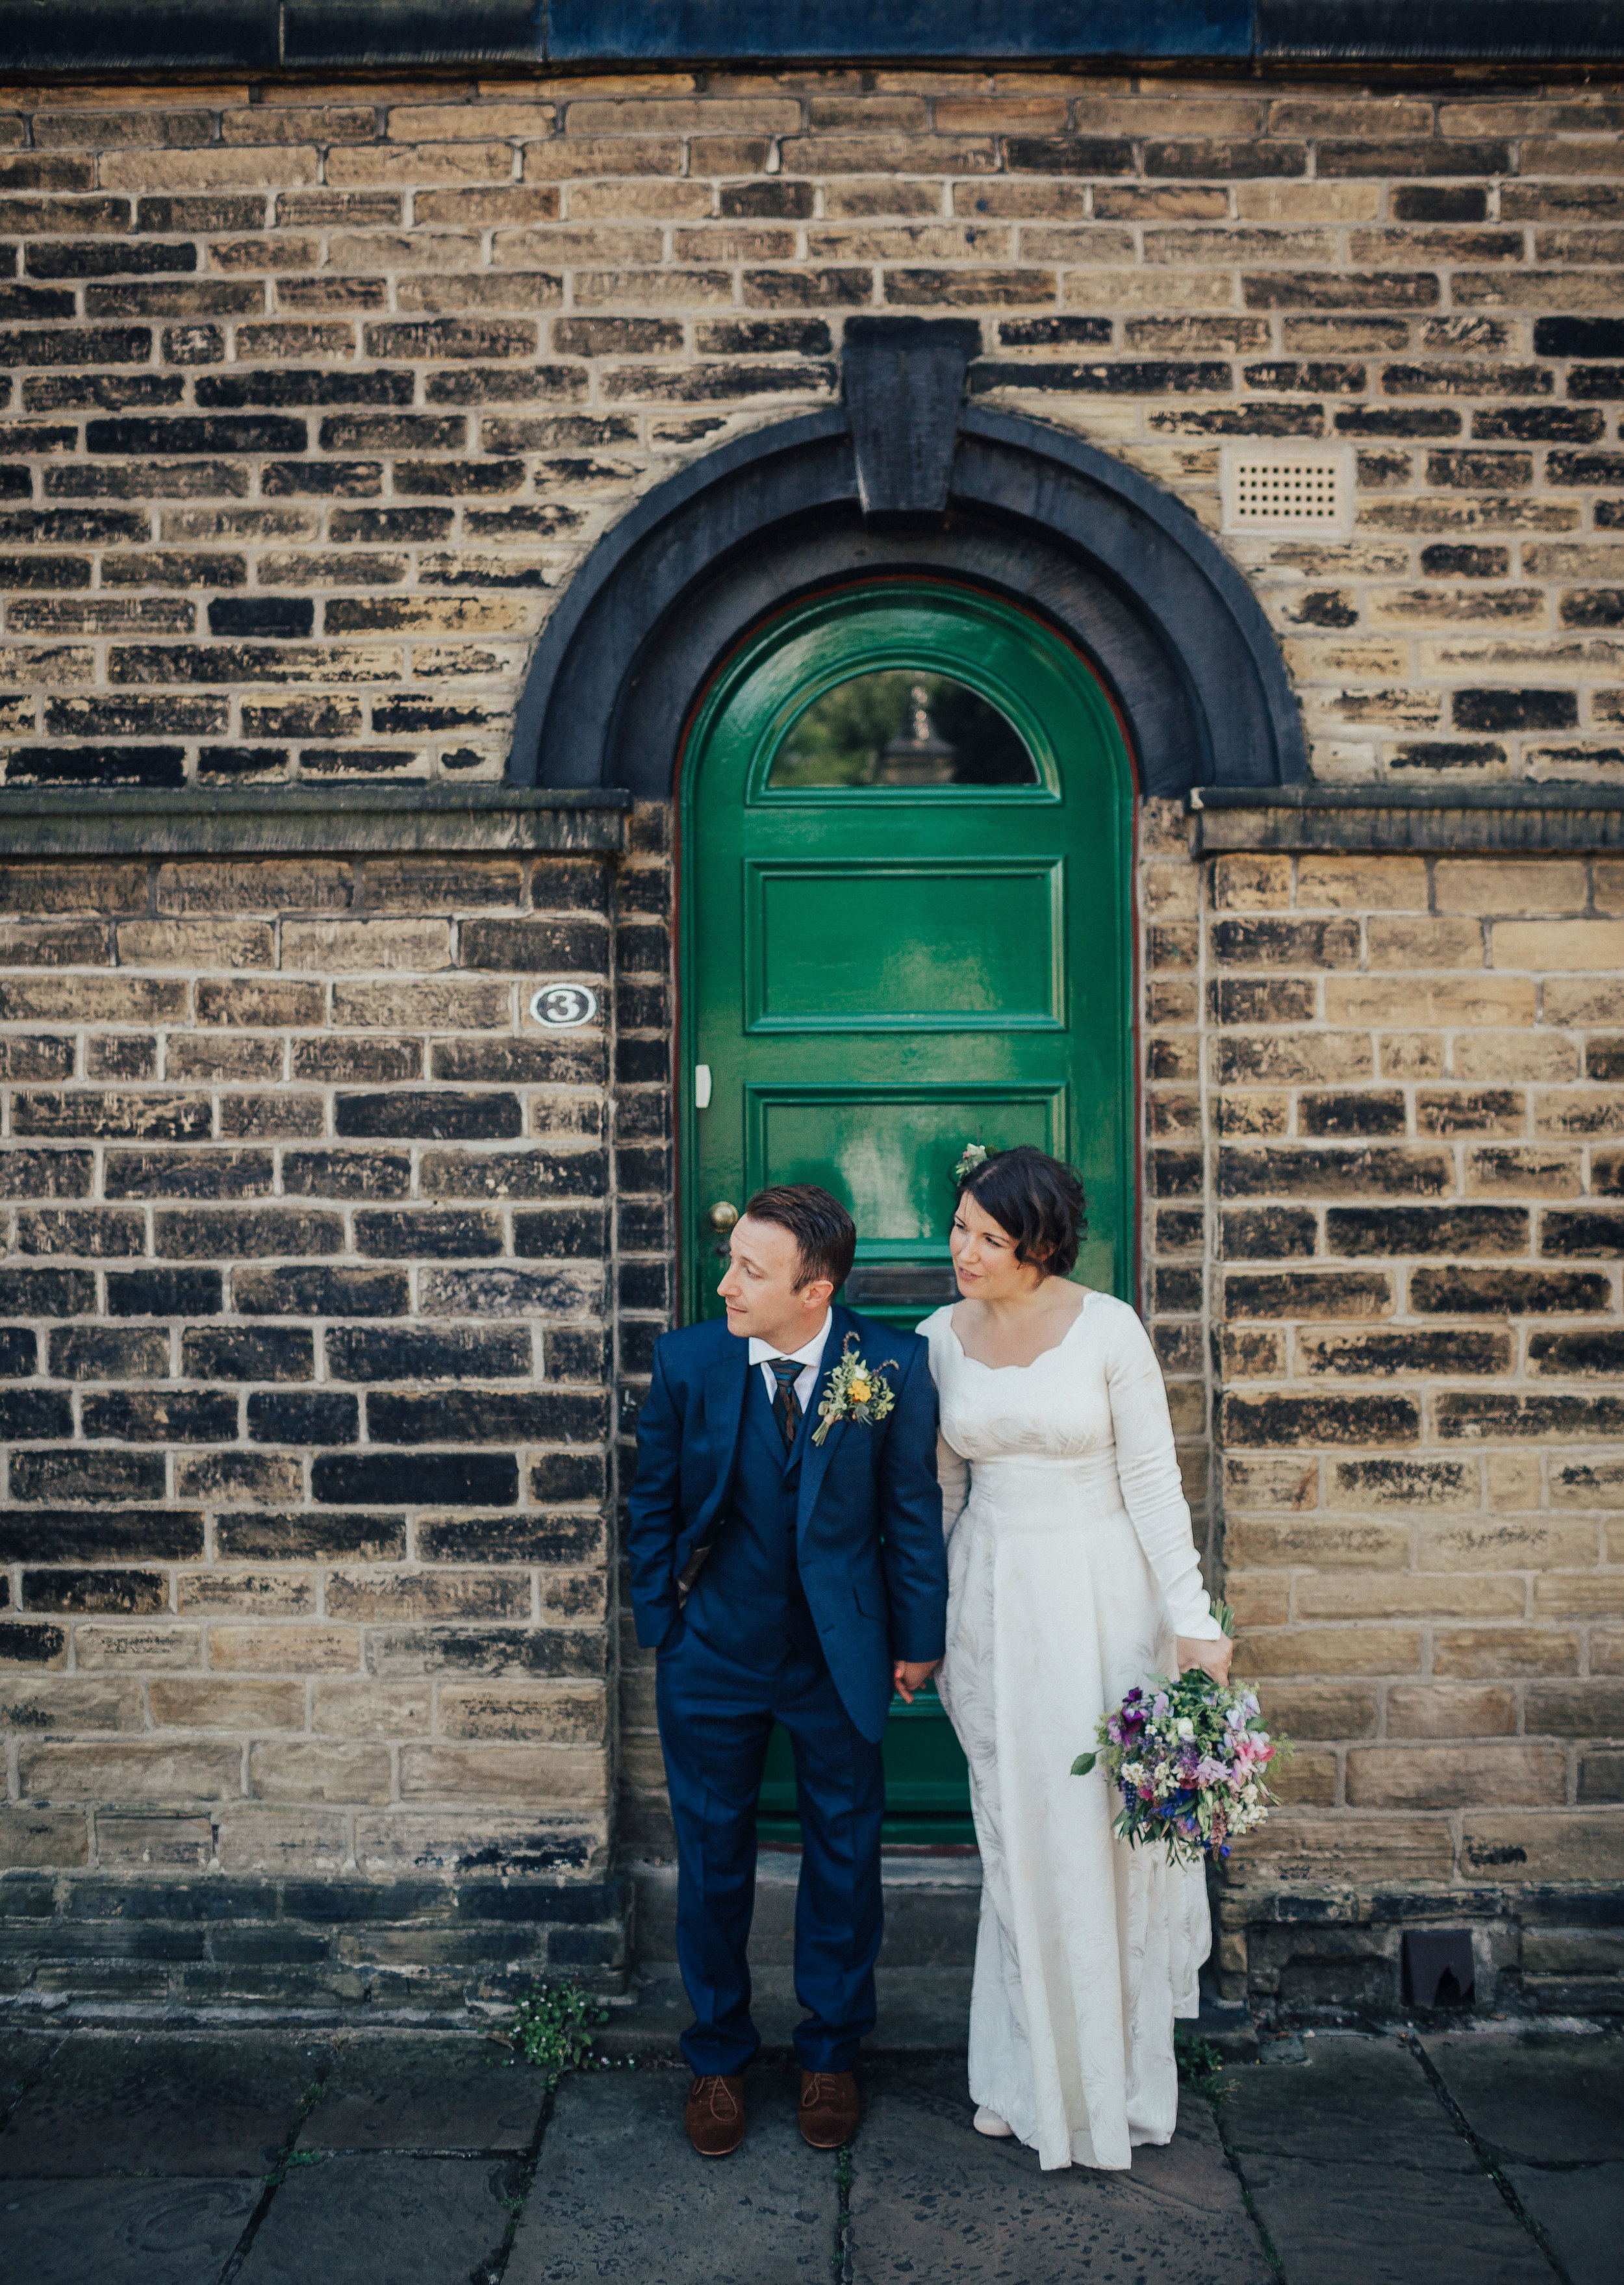 VICTORIA_HALL_SALTAIRE_VINTAGE_YORKSHIRE_WEDDING_PJ_PHILLIPS_PHOTOGRAPHY_67.jpg